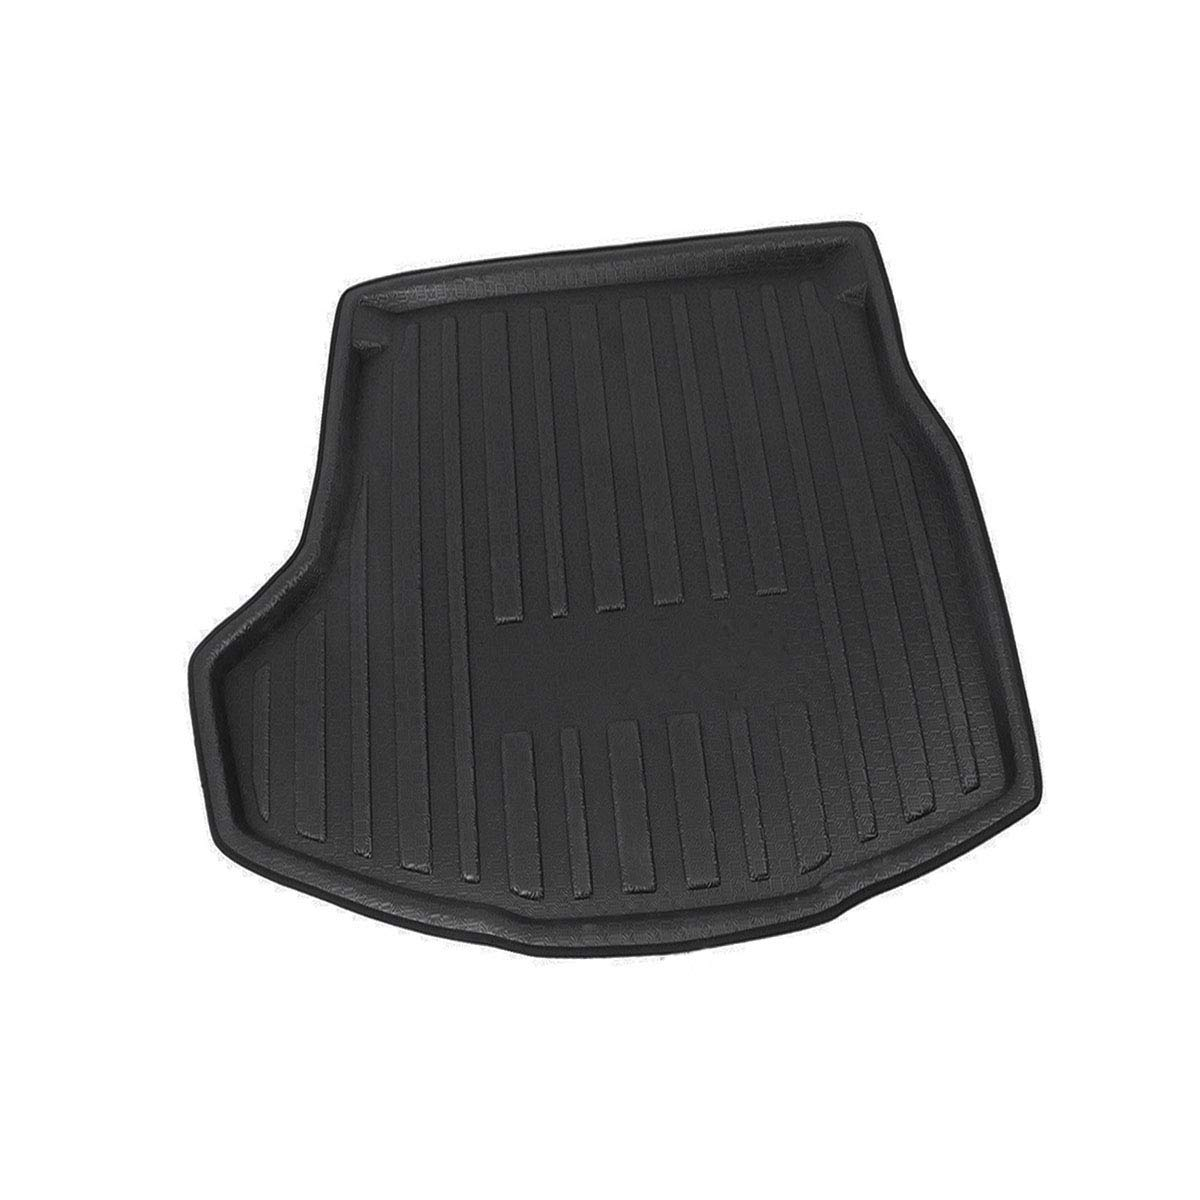 ZYHW Auto Cargo Liner Boot Rear Trunk Mat Tray Floor Mat Cover Protector for 2014-2018 Toyota Corolla